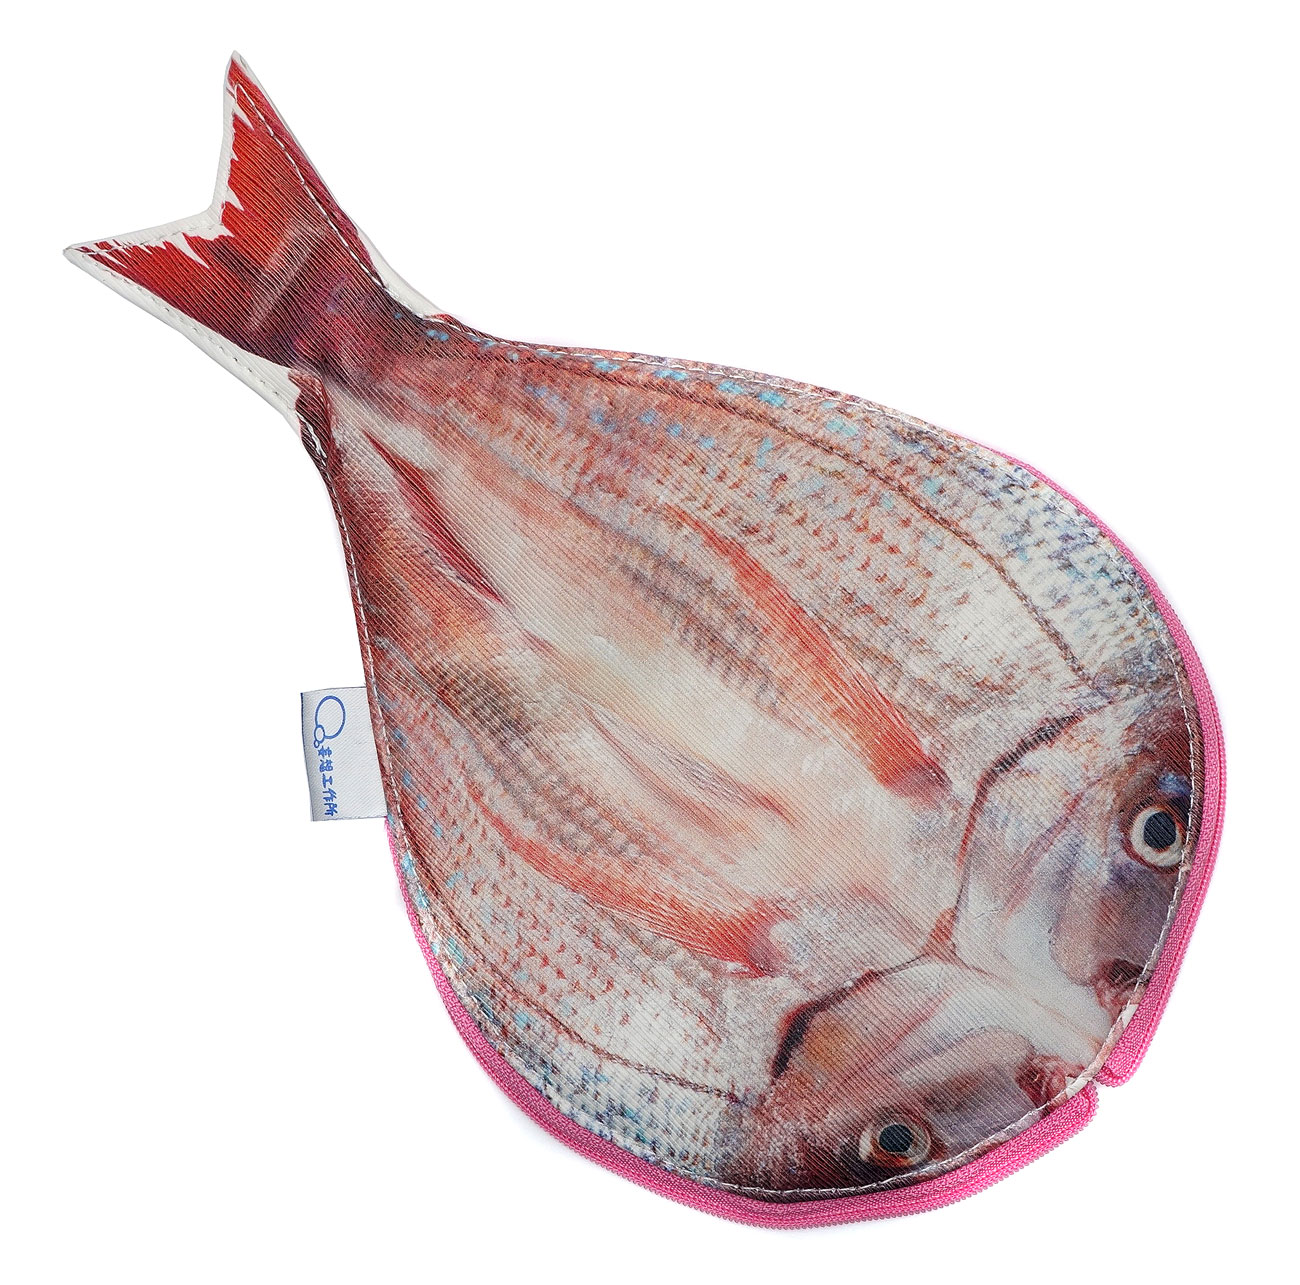 sea-bream-high-res-flat-web